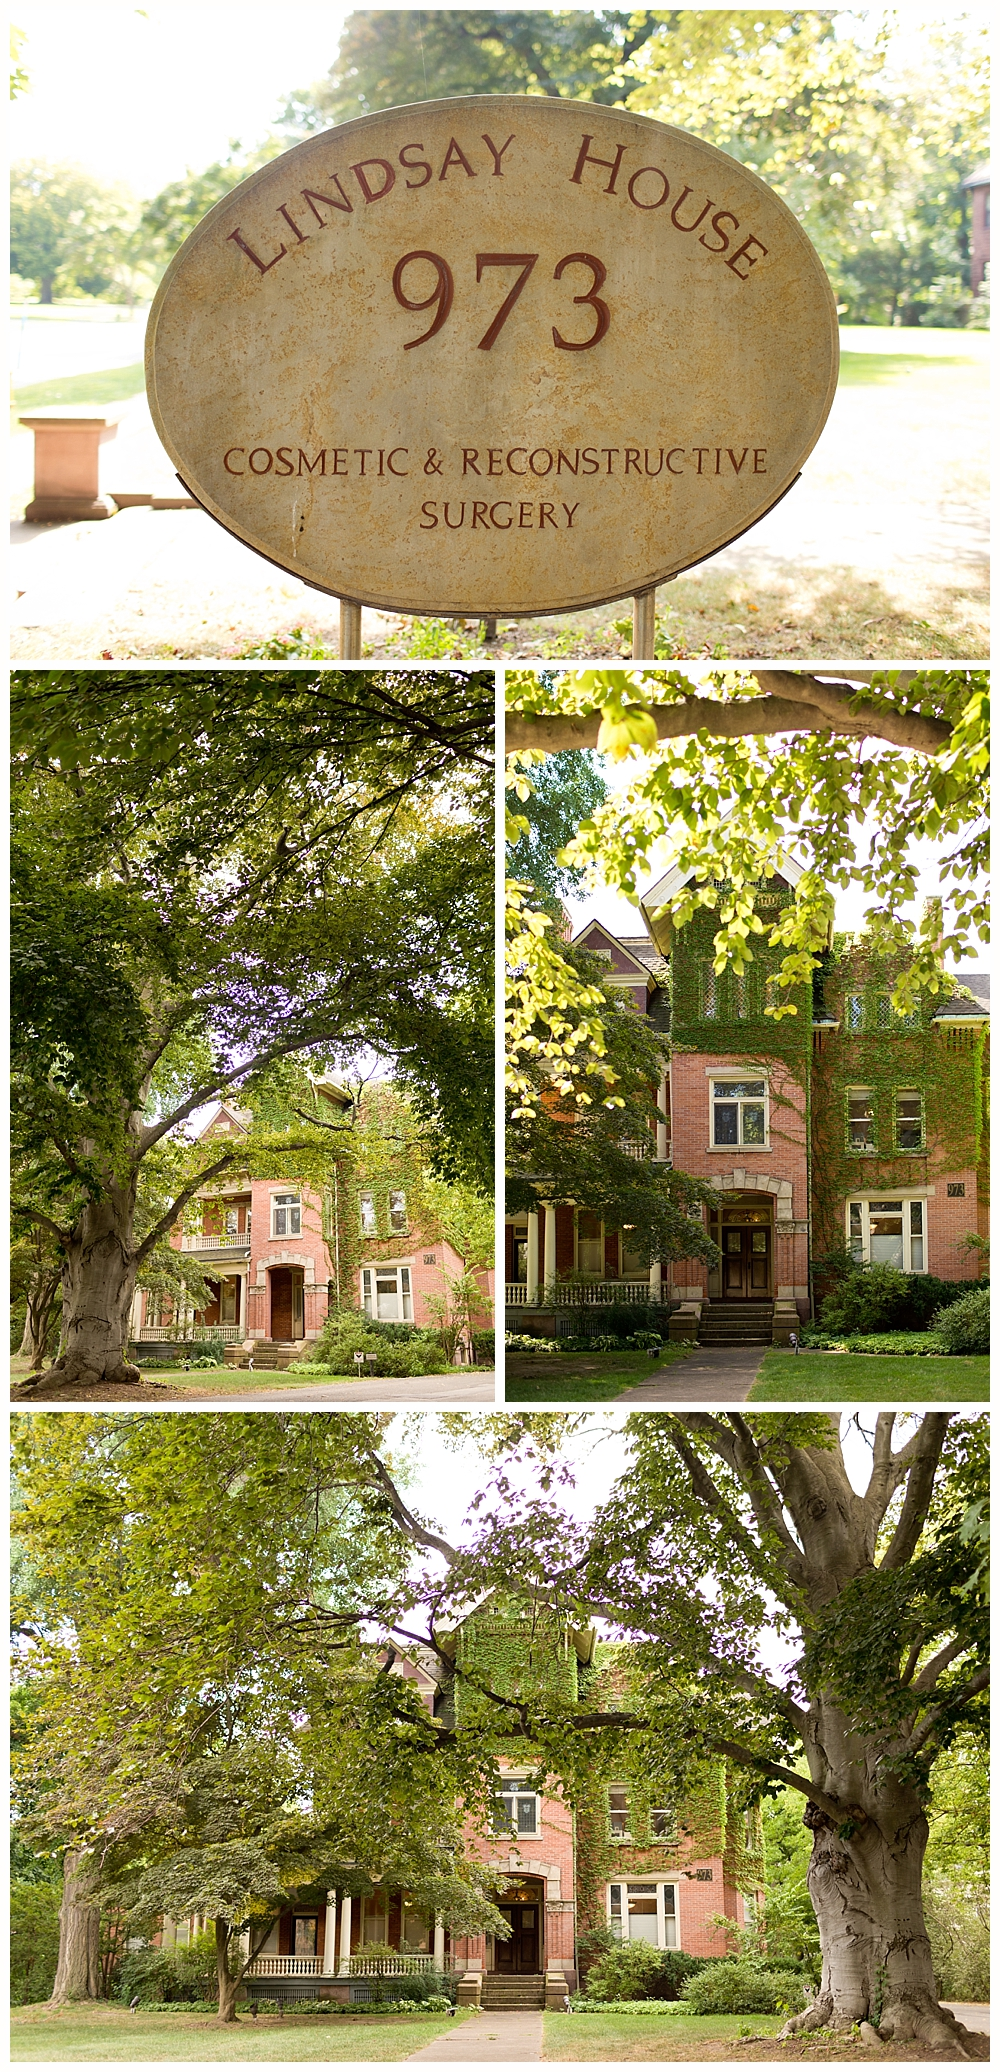 Lindsay House historic home in Rochester, NY